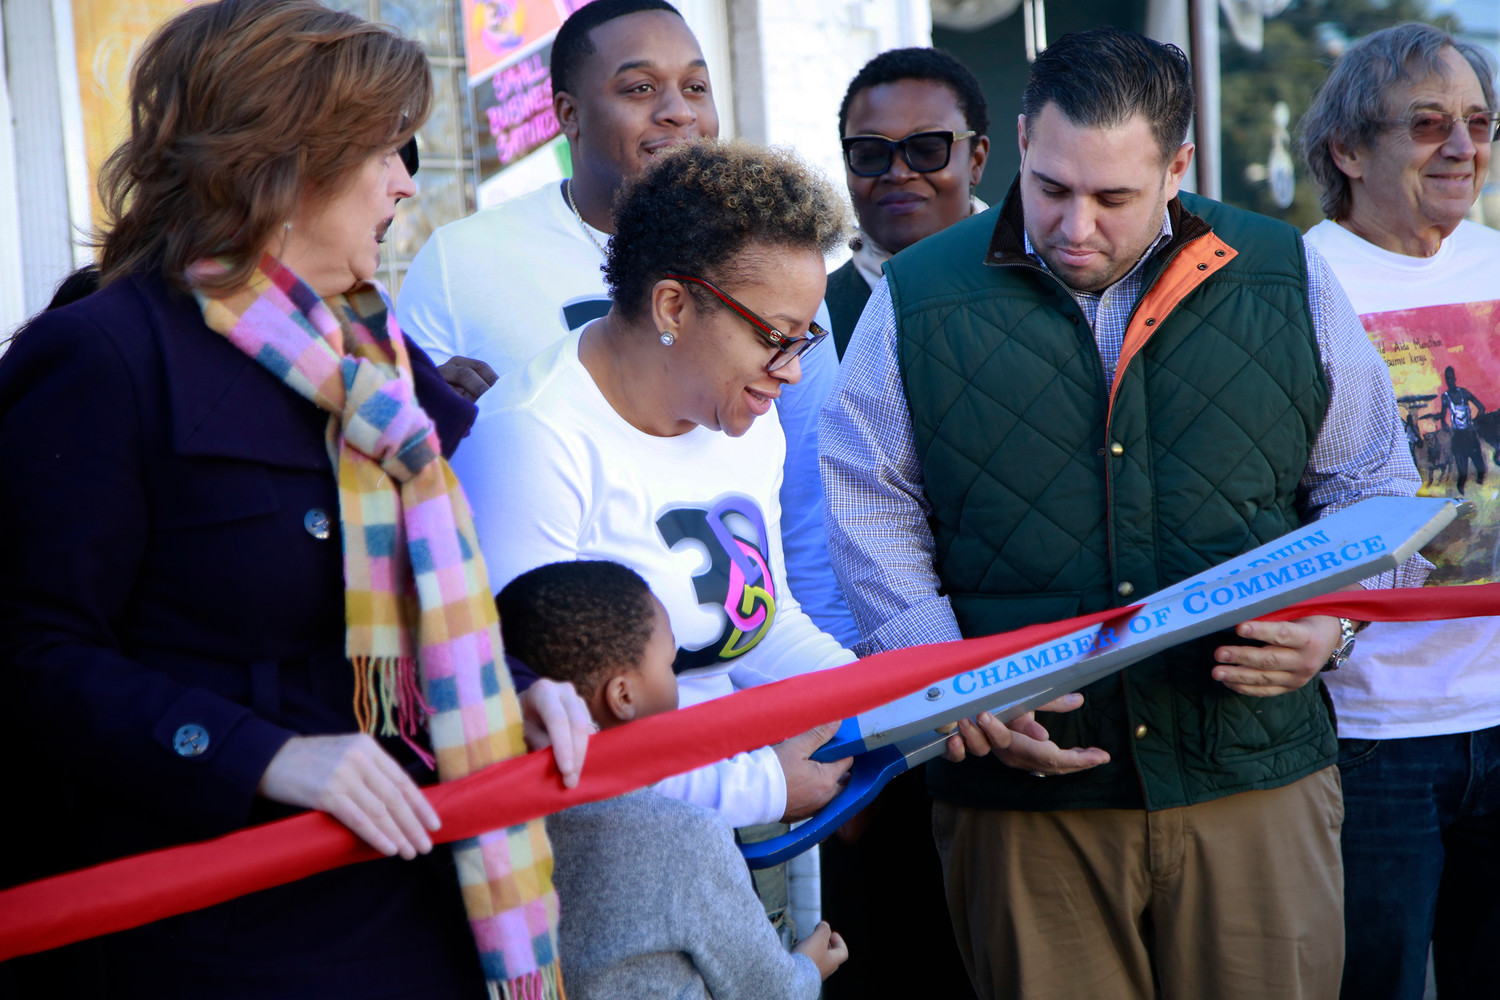 Dr. Zodelia Williams, Founder/Executive Director, cuts the ribbon on 3D's Empowerment Center.